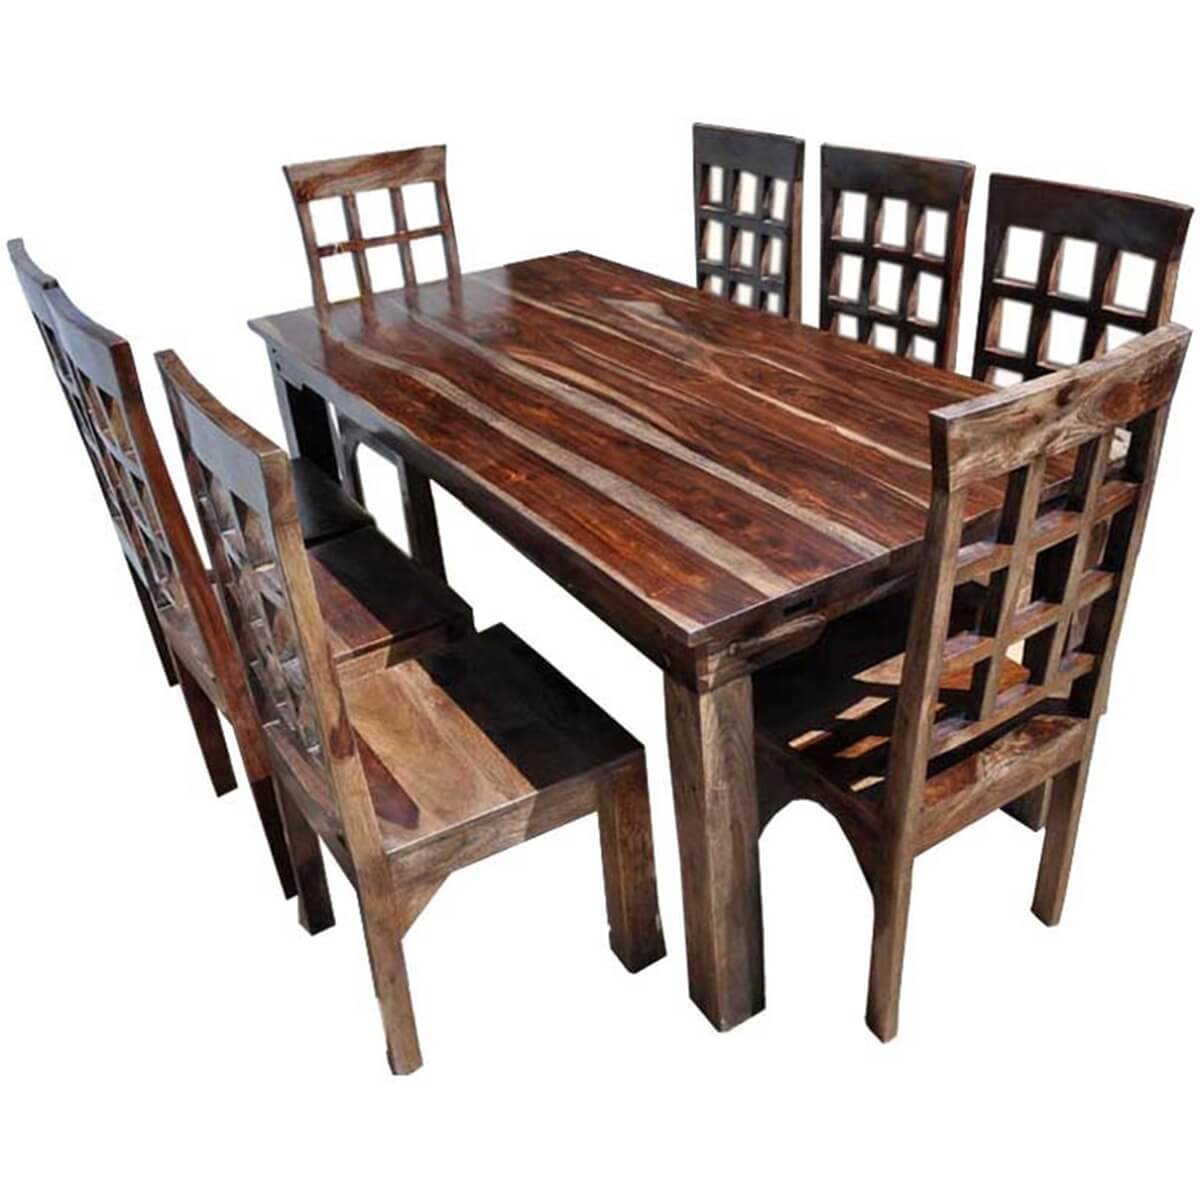 Portland rustic furniture dining room table chair set w extension - India dining table ...